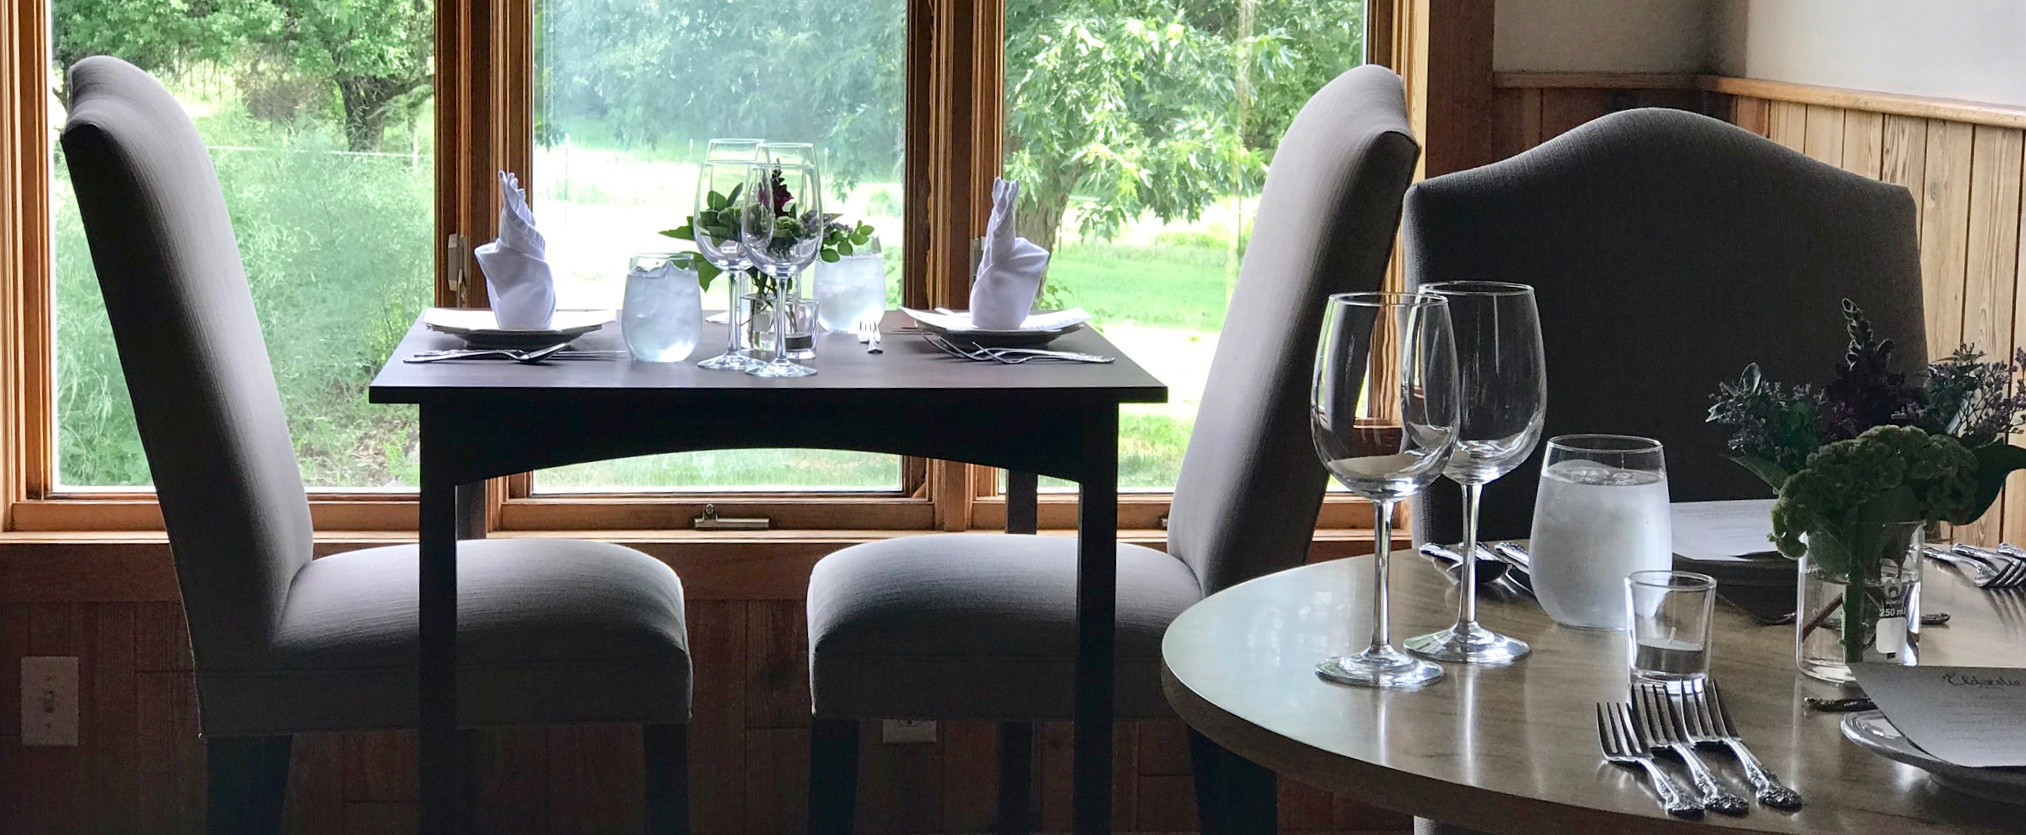 Elderslie Farm Dining Room